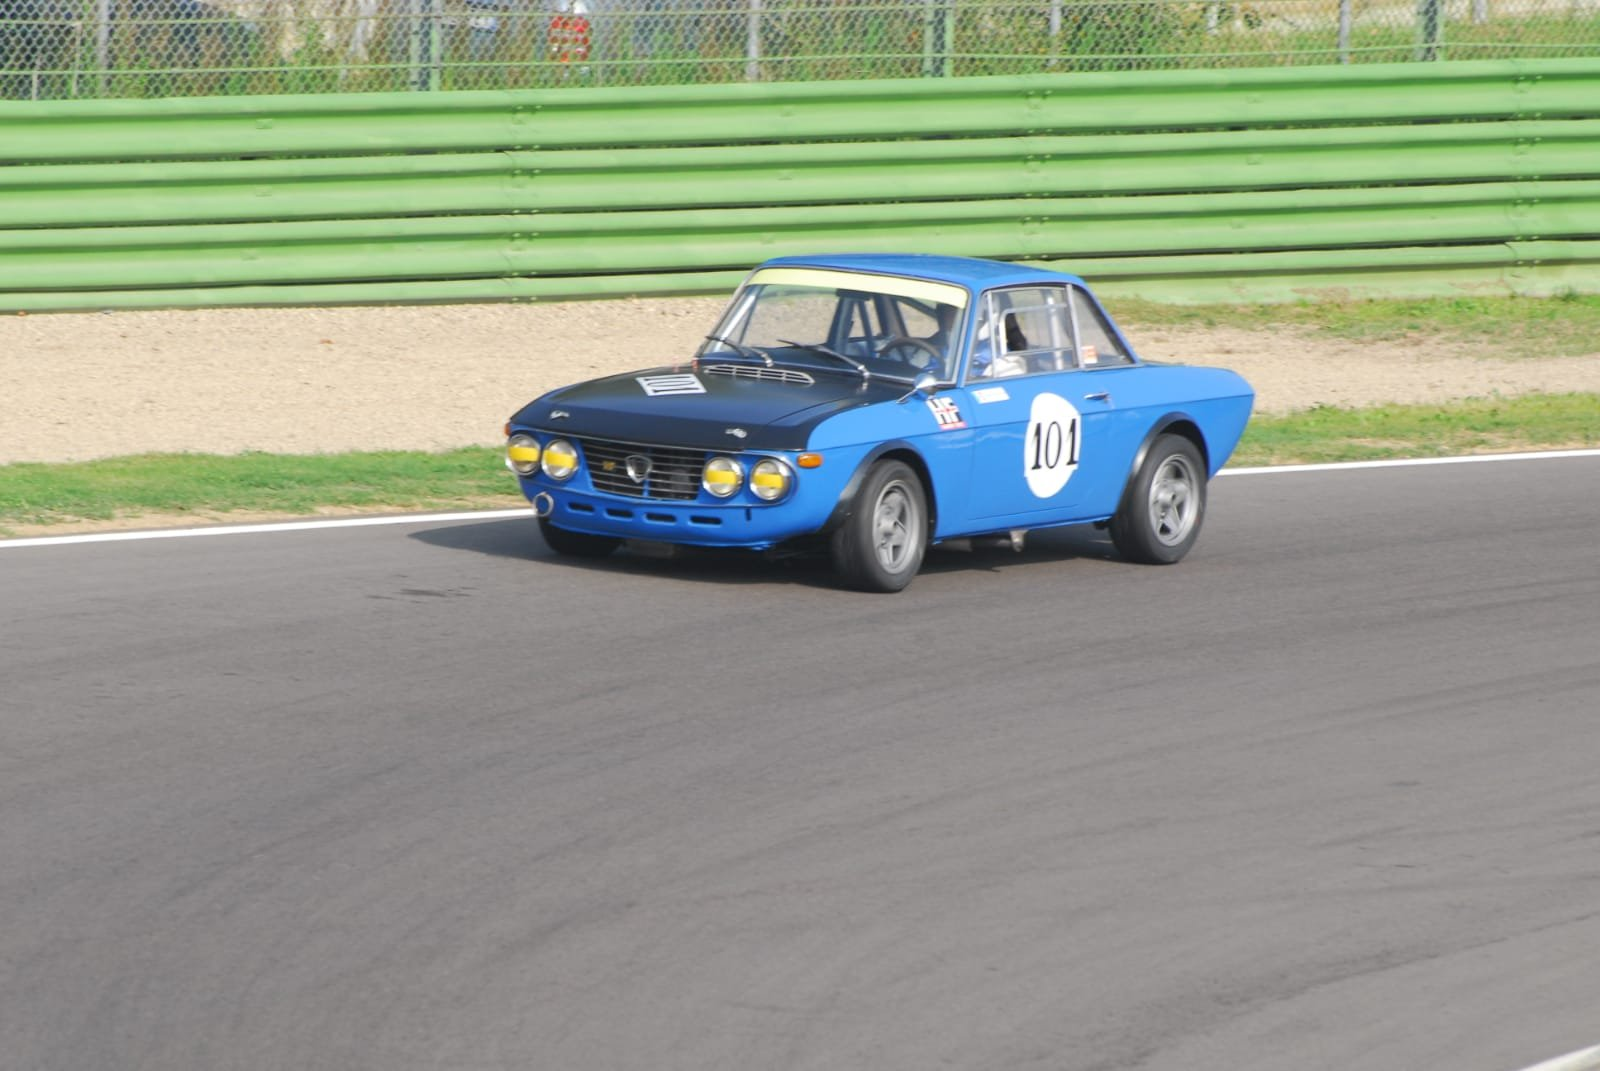 1970 Lancia fulvia rally for race gr4 For Sale (picture 4 of 4)